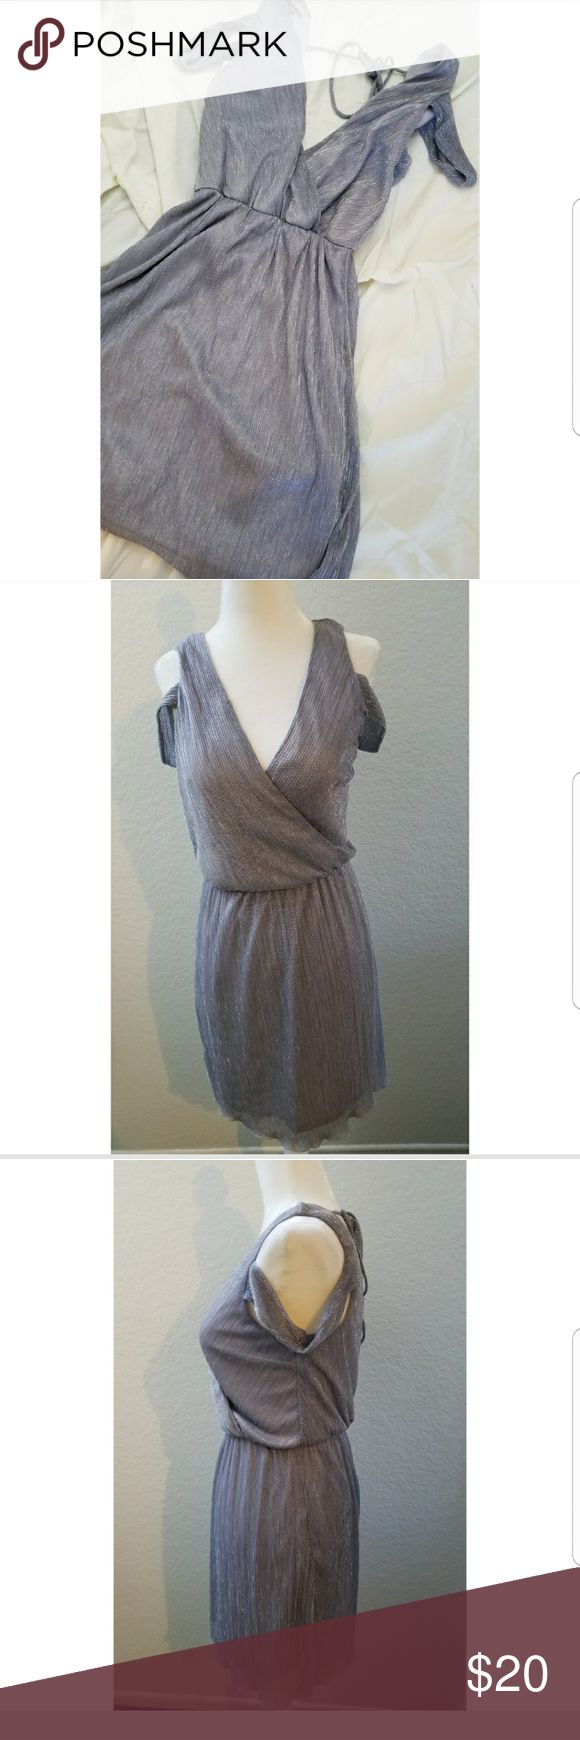 Charlotte Russe Silver Sparkly Dress Charlotte Russe Silver Sparkly Dress perfect for the holidays.  Size: Medium   Used once looks brand new Charlotte Russe Dresses